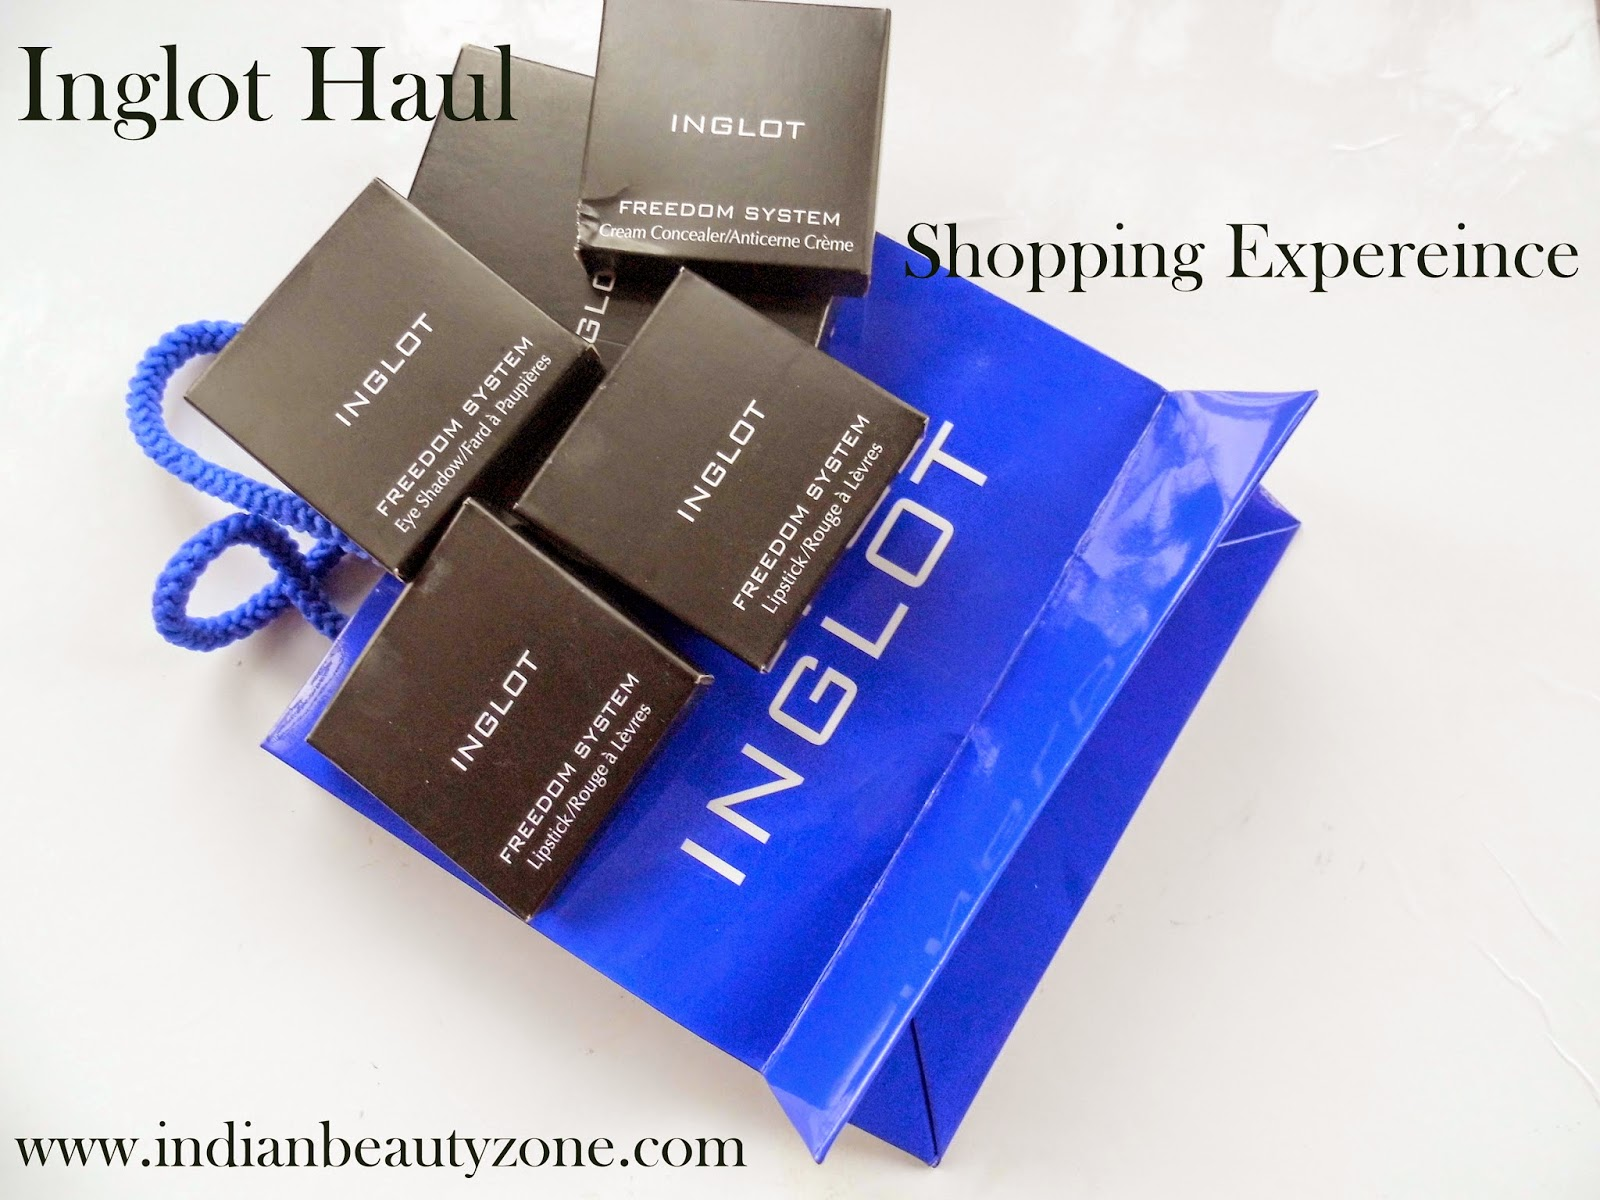 Inglot makeup products